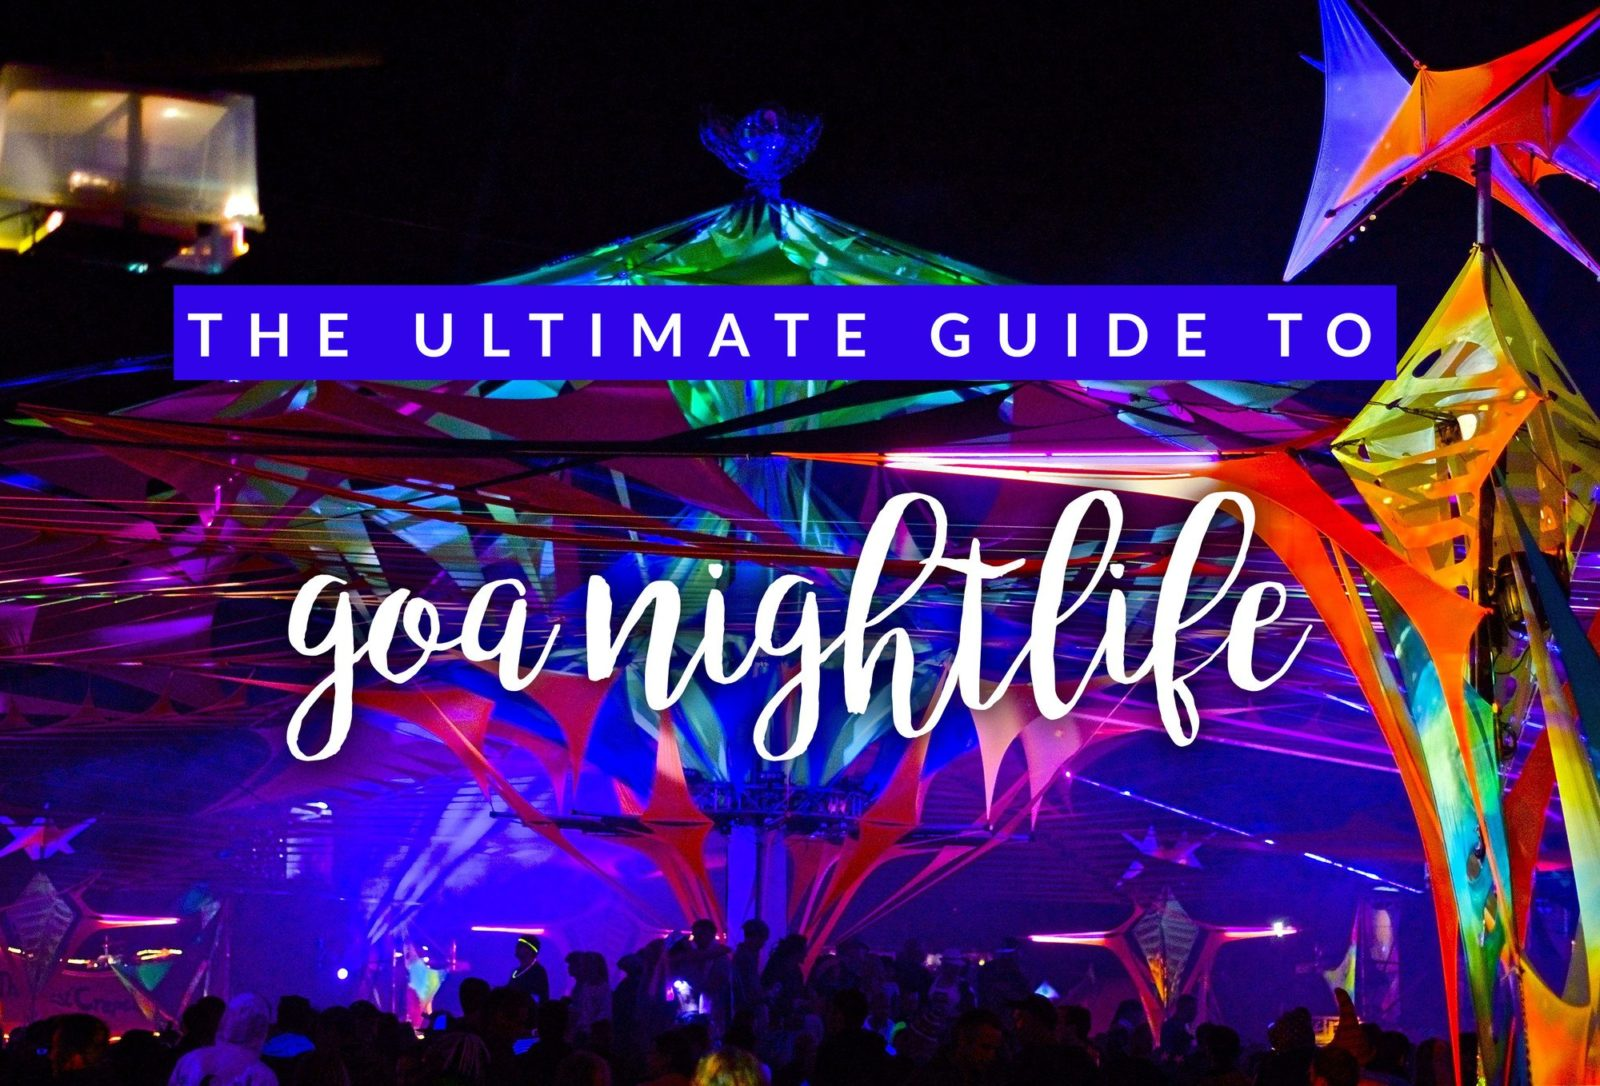 Goa Nightlife The 6 Most Popular Party Places In Goa Hippie In Heels